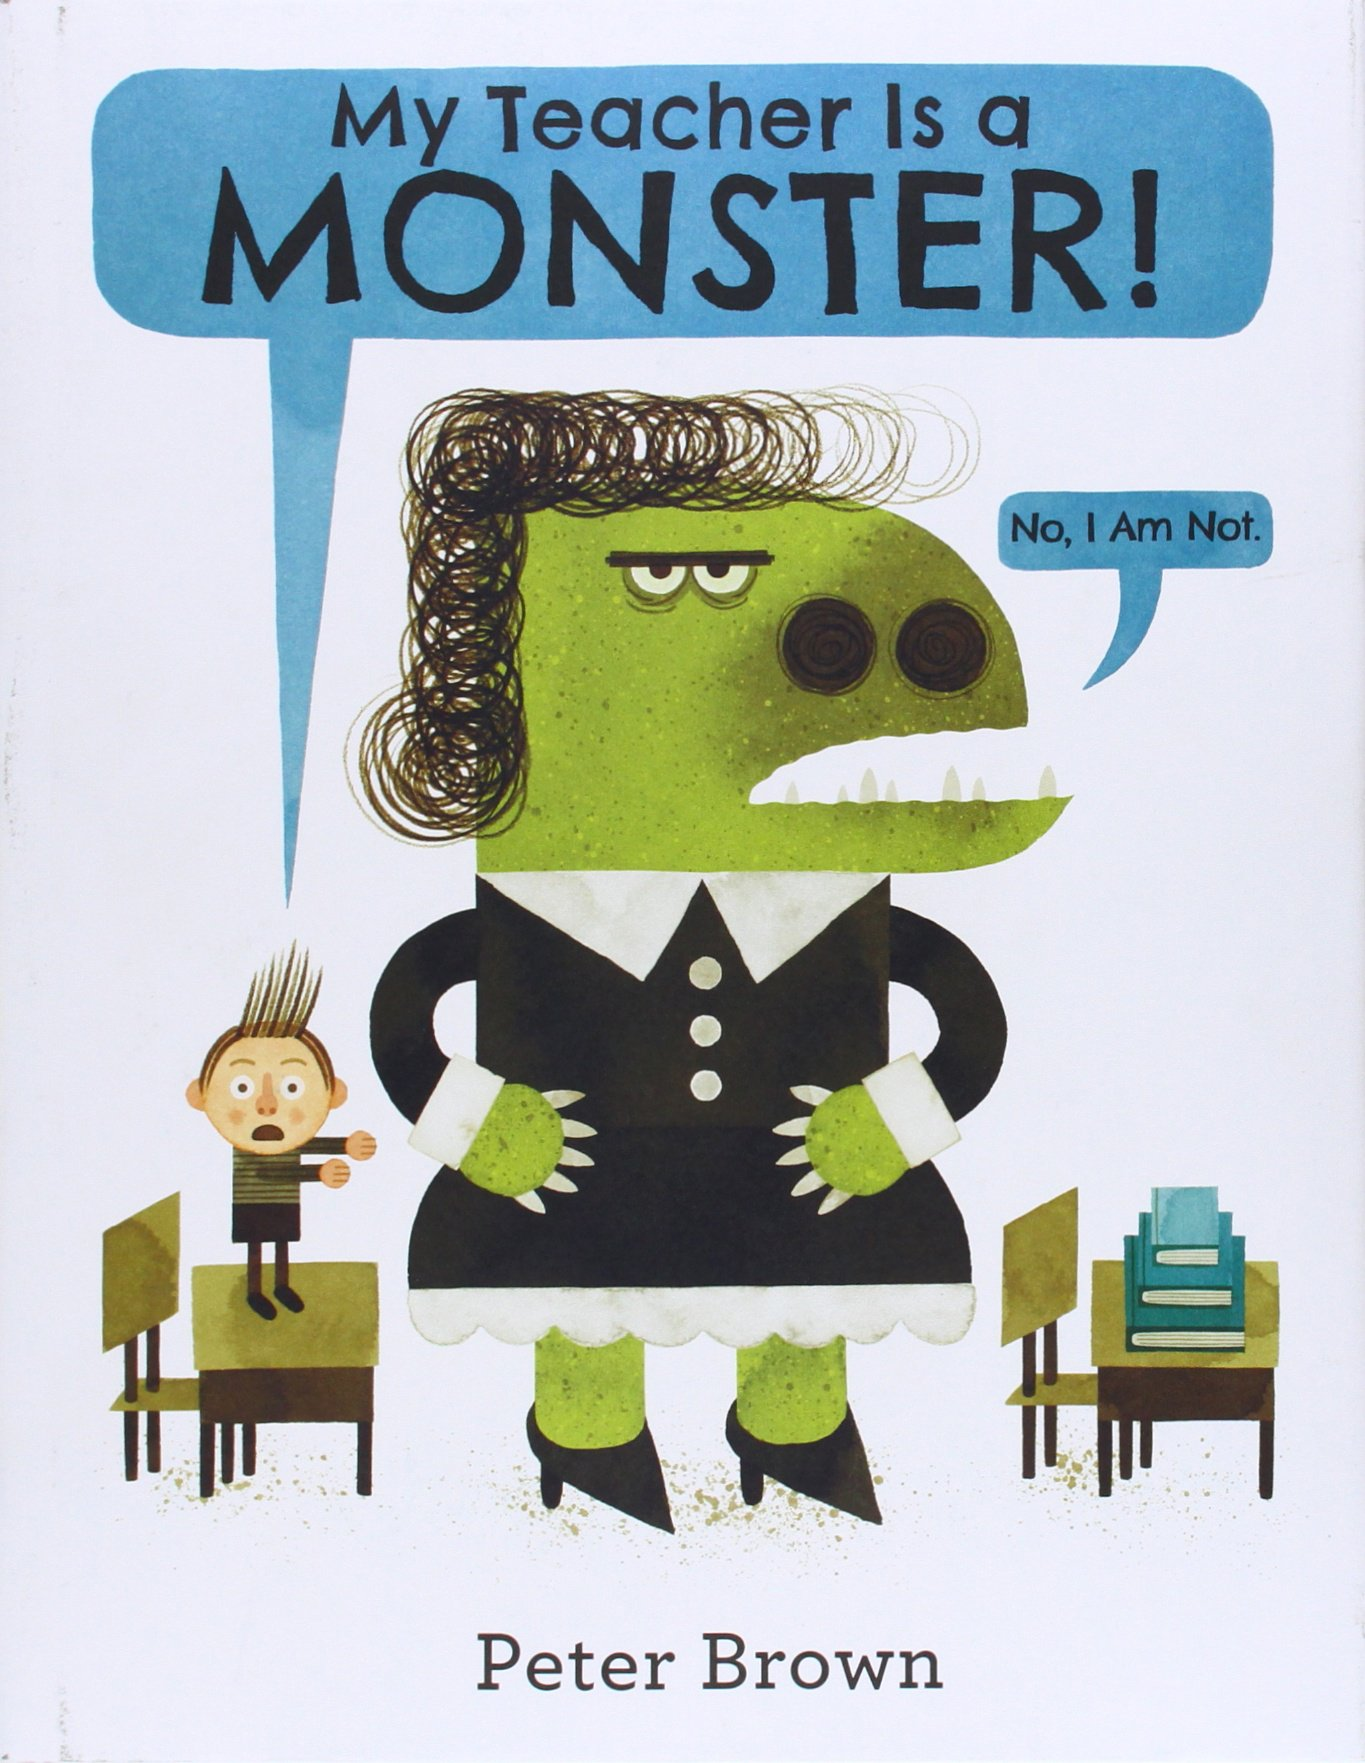 My Teacher Is a Monster! (no, I am not) by Peter Brown